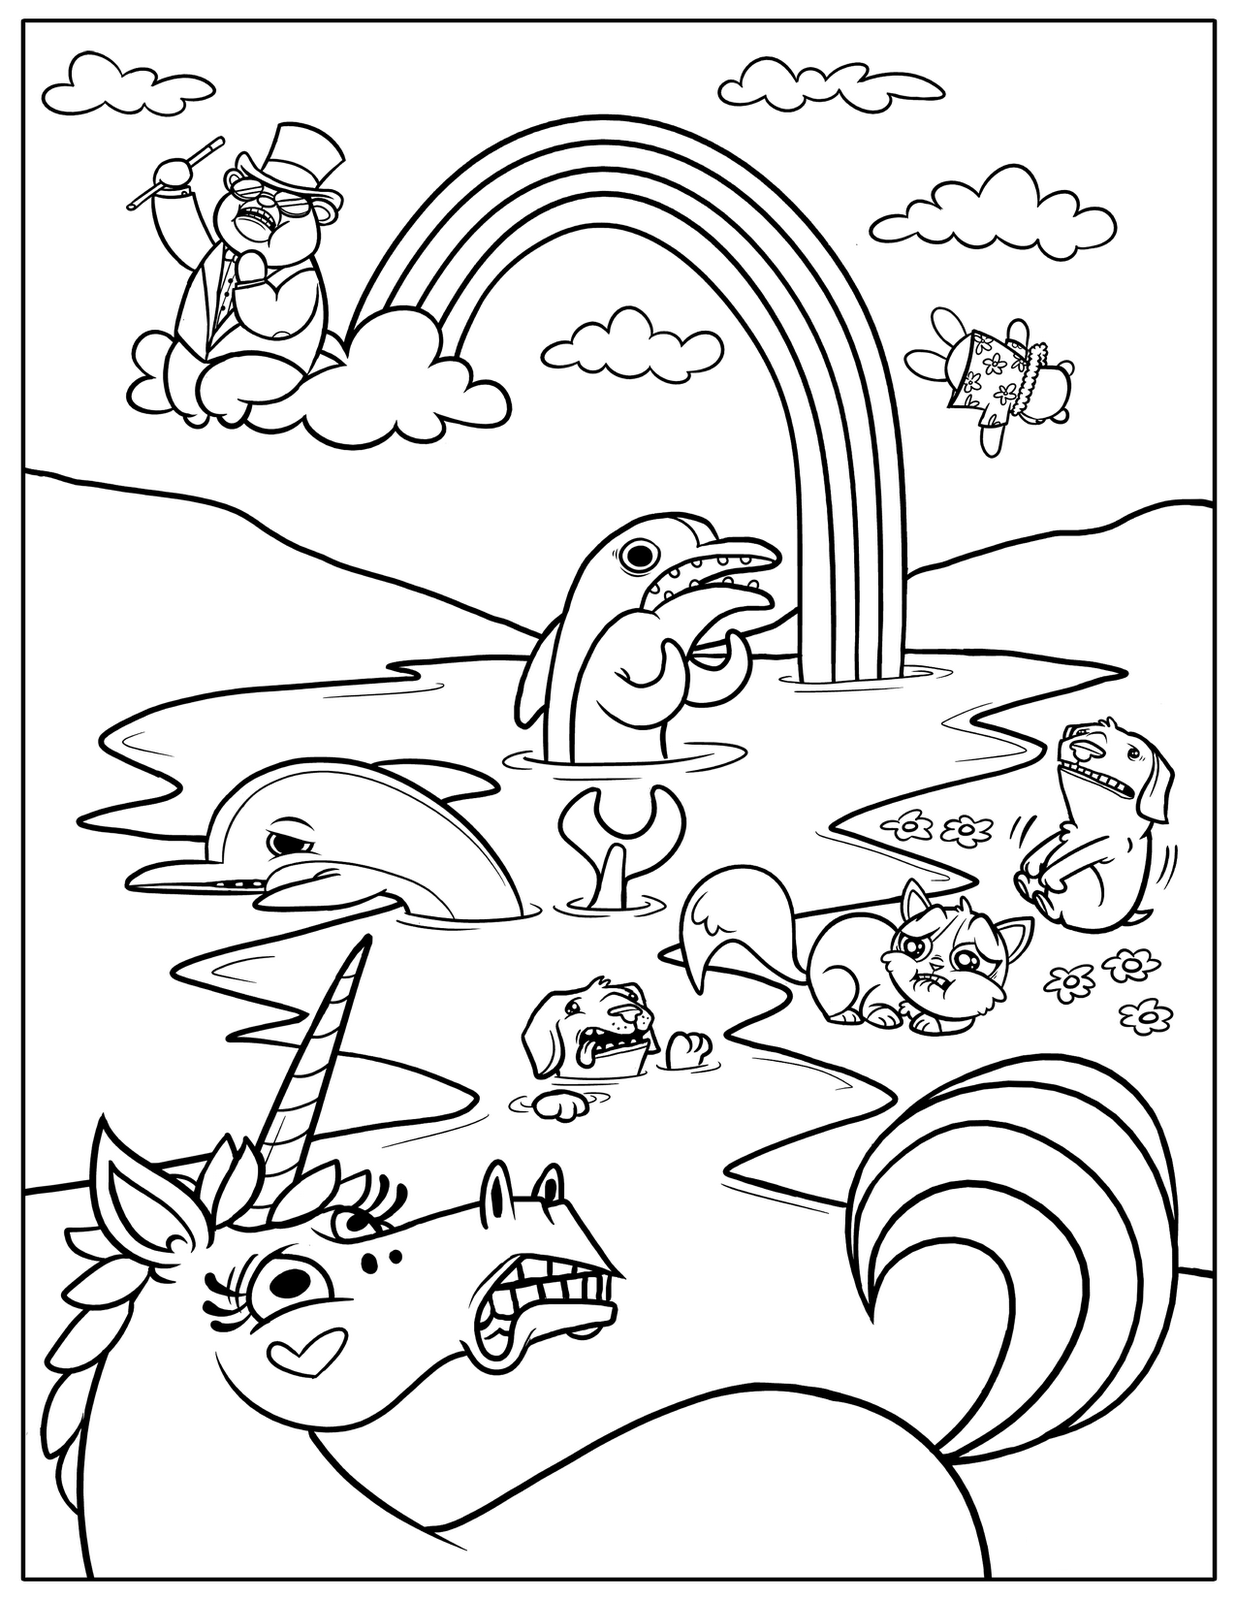 Colouring sheets for lkg - Rainbow Coloring Pages Kids Printable